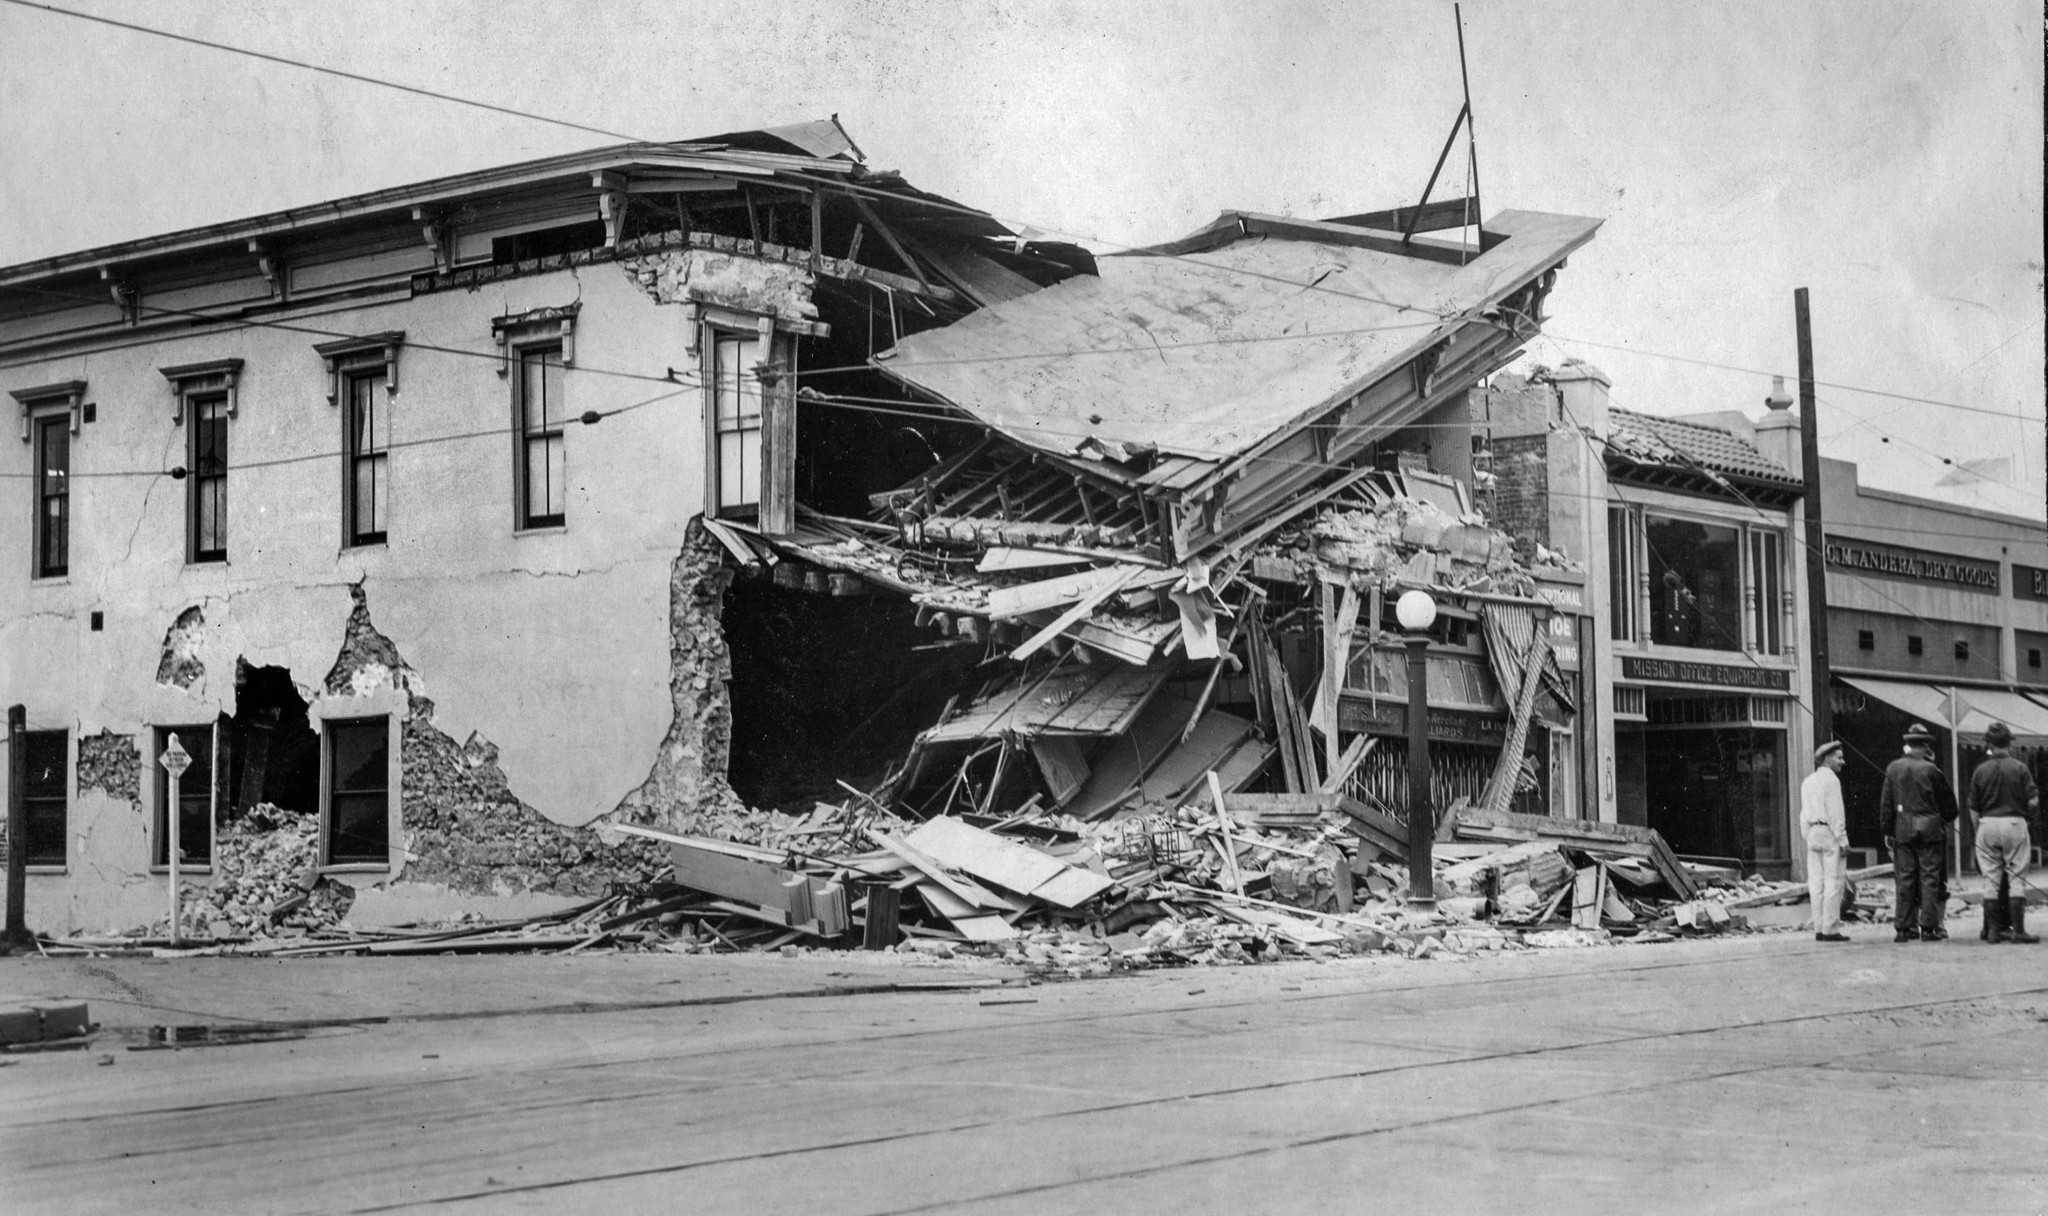 June 29, 1925: Ruins of State Street store in Santa Barbara after earthquake. This photo was publish